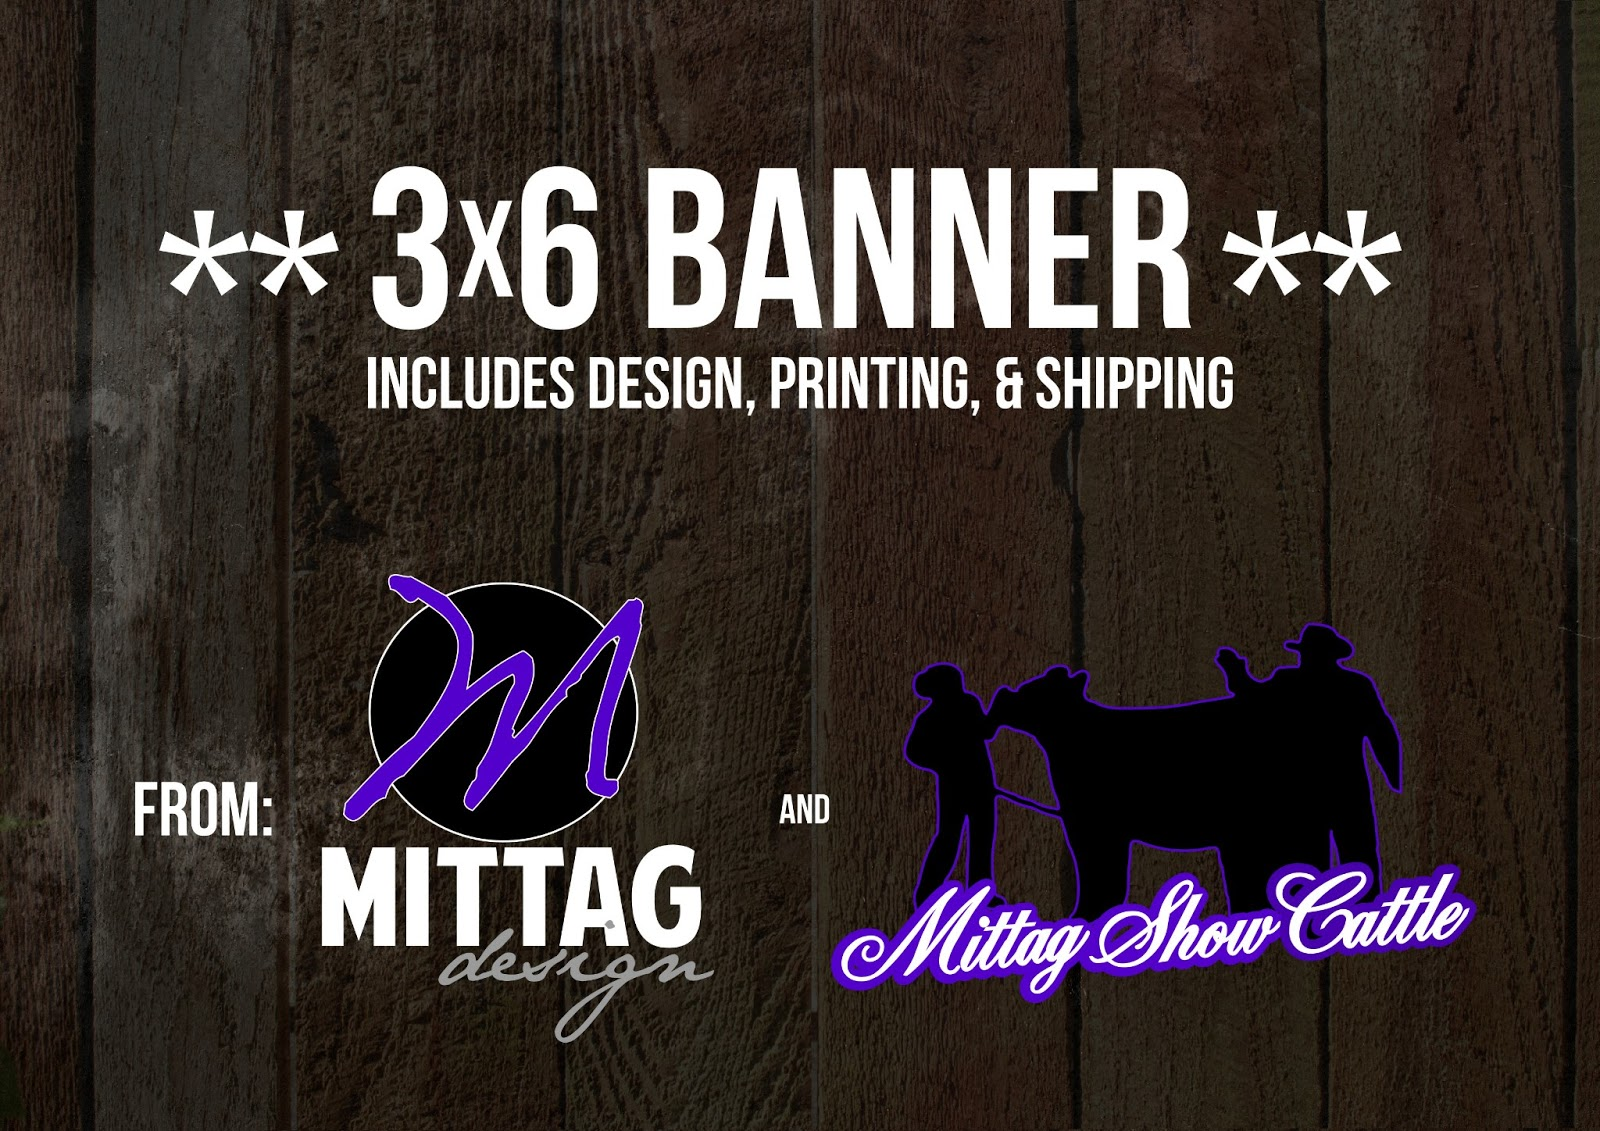 Mittag Blog Text To Matt Lautner Amp Ryan Habeger Drew